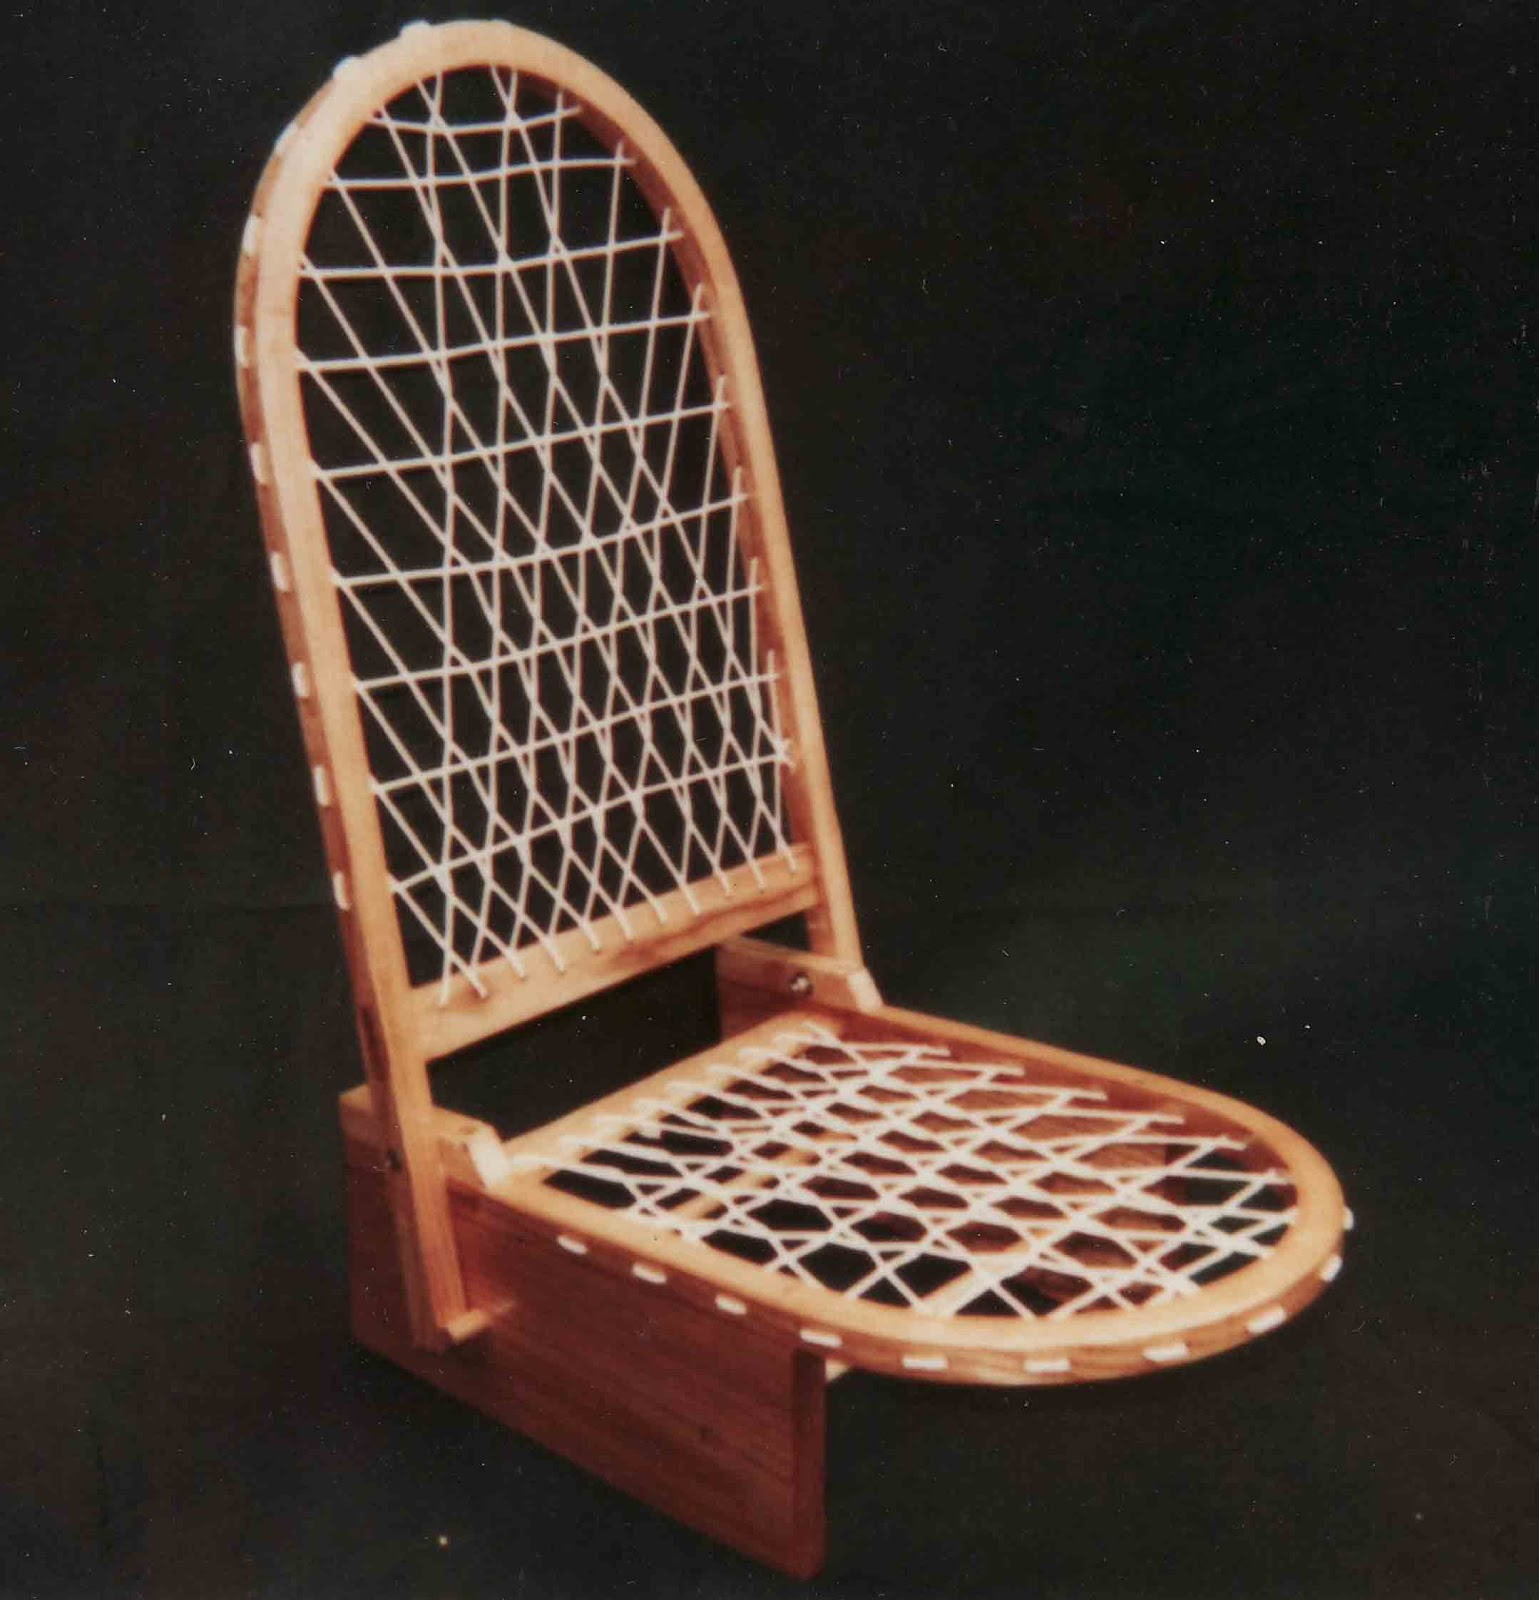 ... A Sno Shu Chair By Native Designs (aka Reginald Lee) Based Out Of  Westport Island, Maine. I Am A Real Sucker For Traditional Snowshoes And  Thus, ...